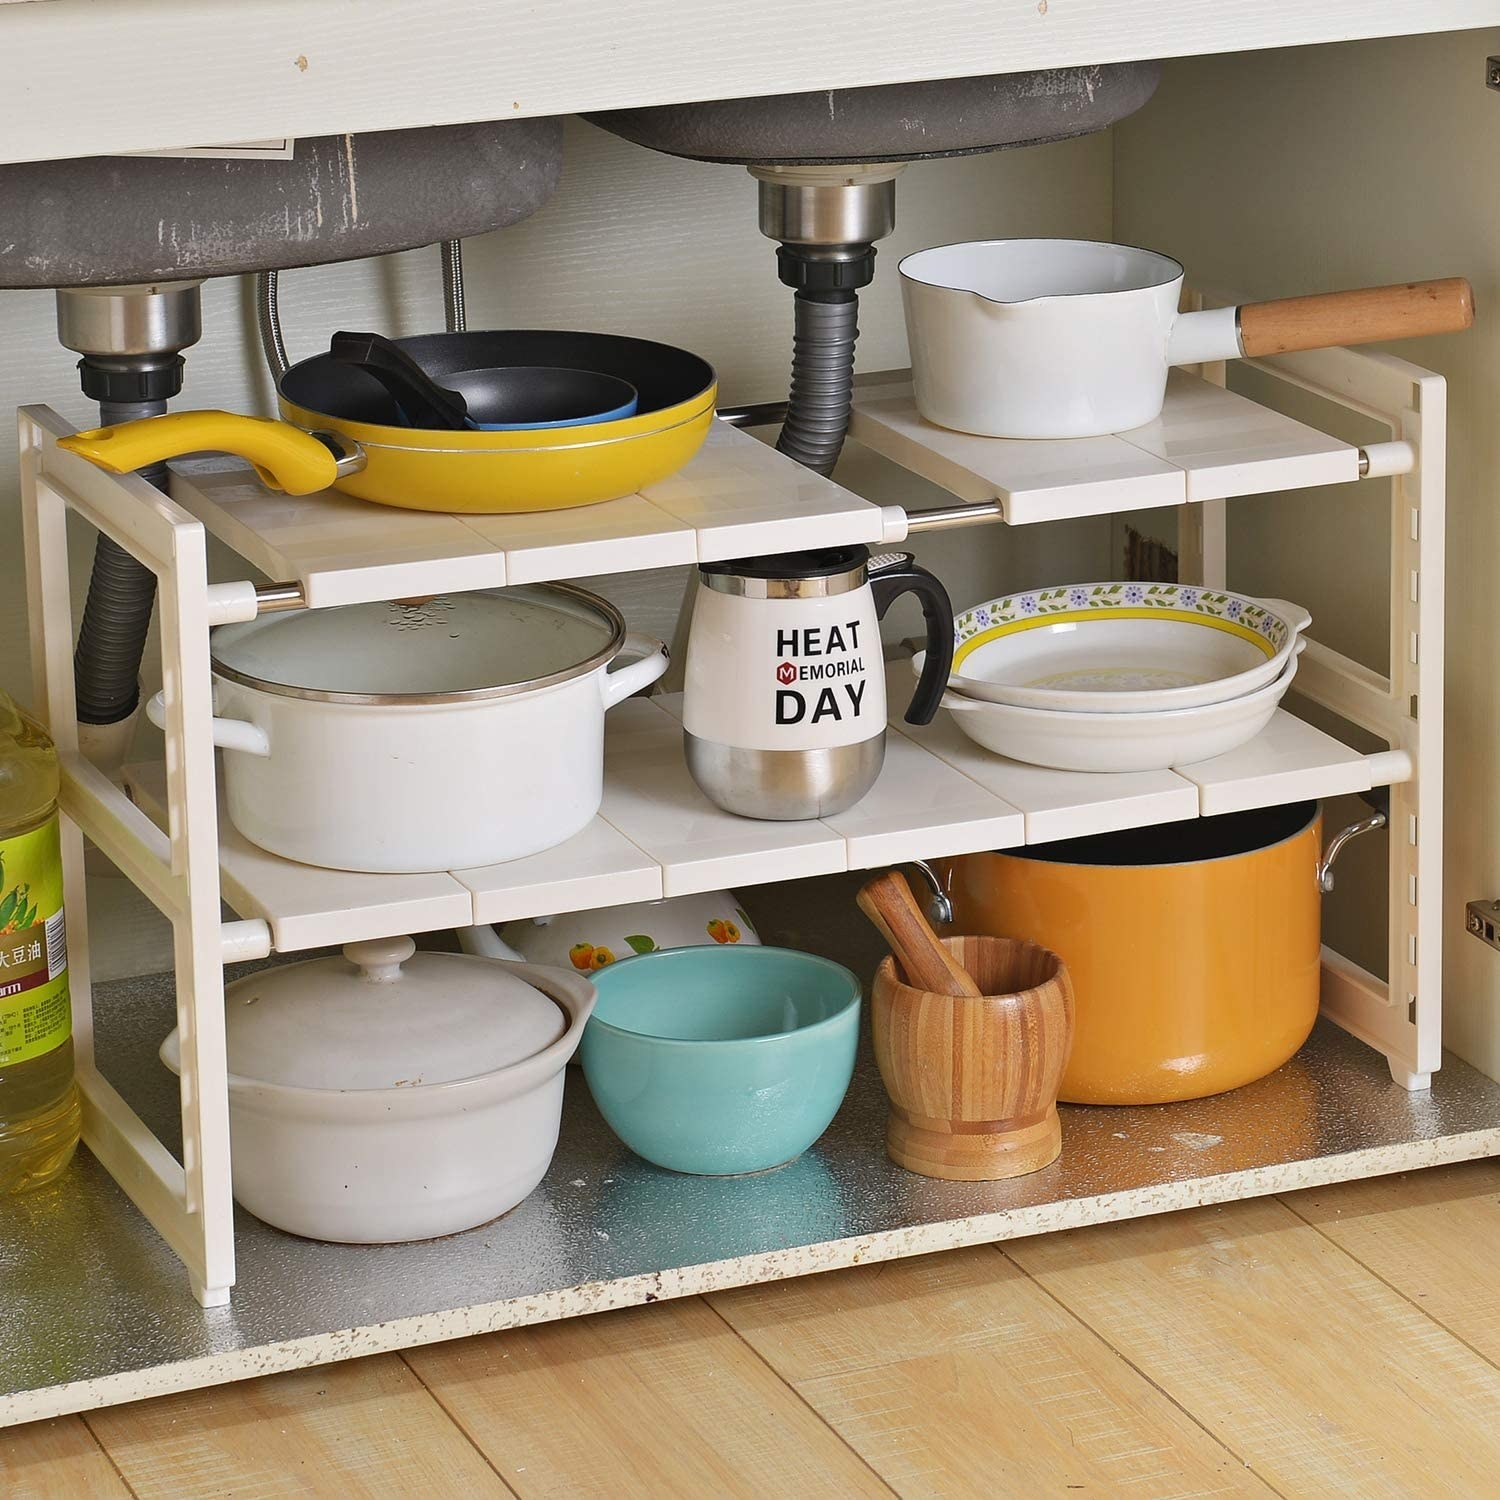 A white, plastic two-tier under-sink organizer